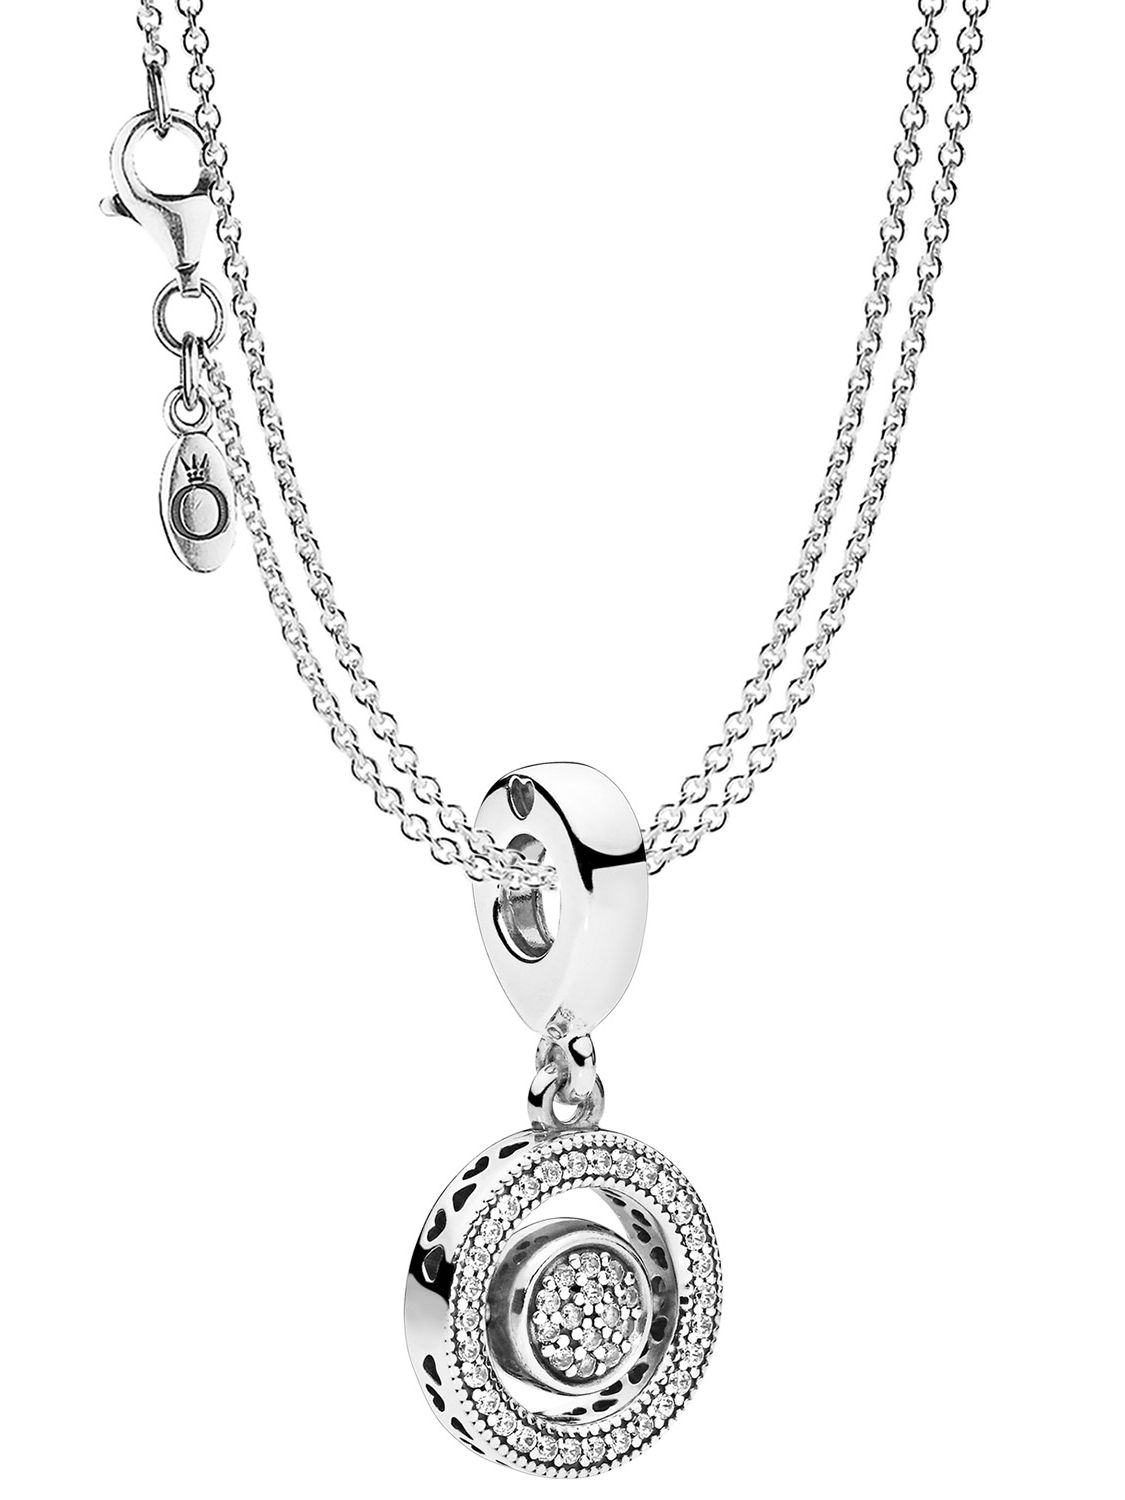 Pandora 08591 Necklace With Charm Pendant Logo Within Recent Pandora Lockets Logo Necklaces (Gallery 1 of 25)